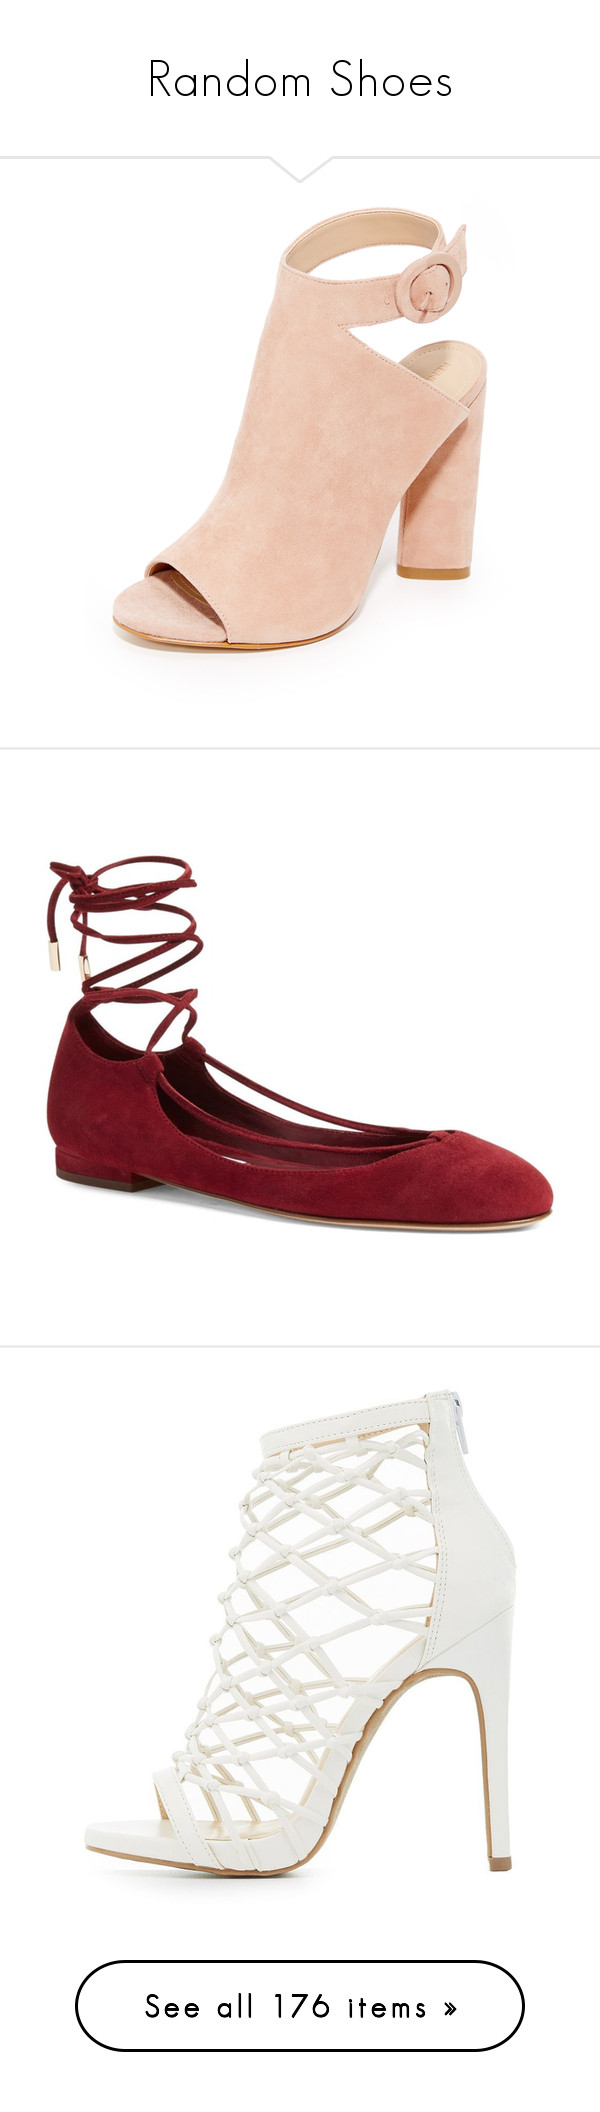 """""""Random Shoes"""" by allyssister ❤ liked on Polyvore featuring shoes, boots, cut out shoes, leather high heel shoes, real leather shoes, high heeled footwear, genuine leather shoes, flats, bordeaux su and ankle wrap ballet flats"""